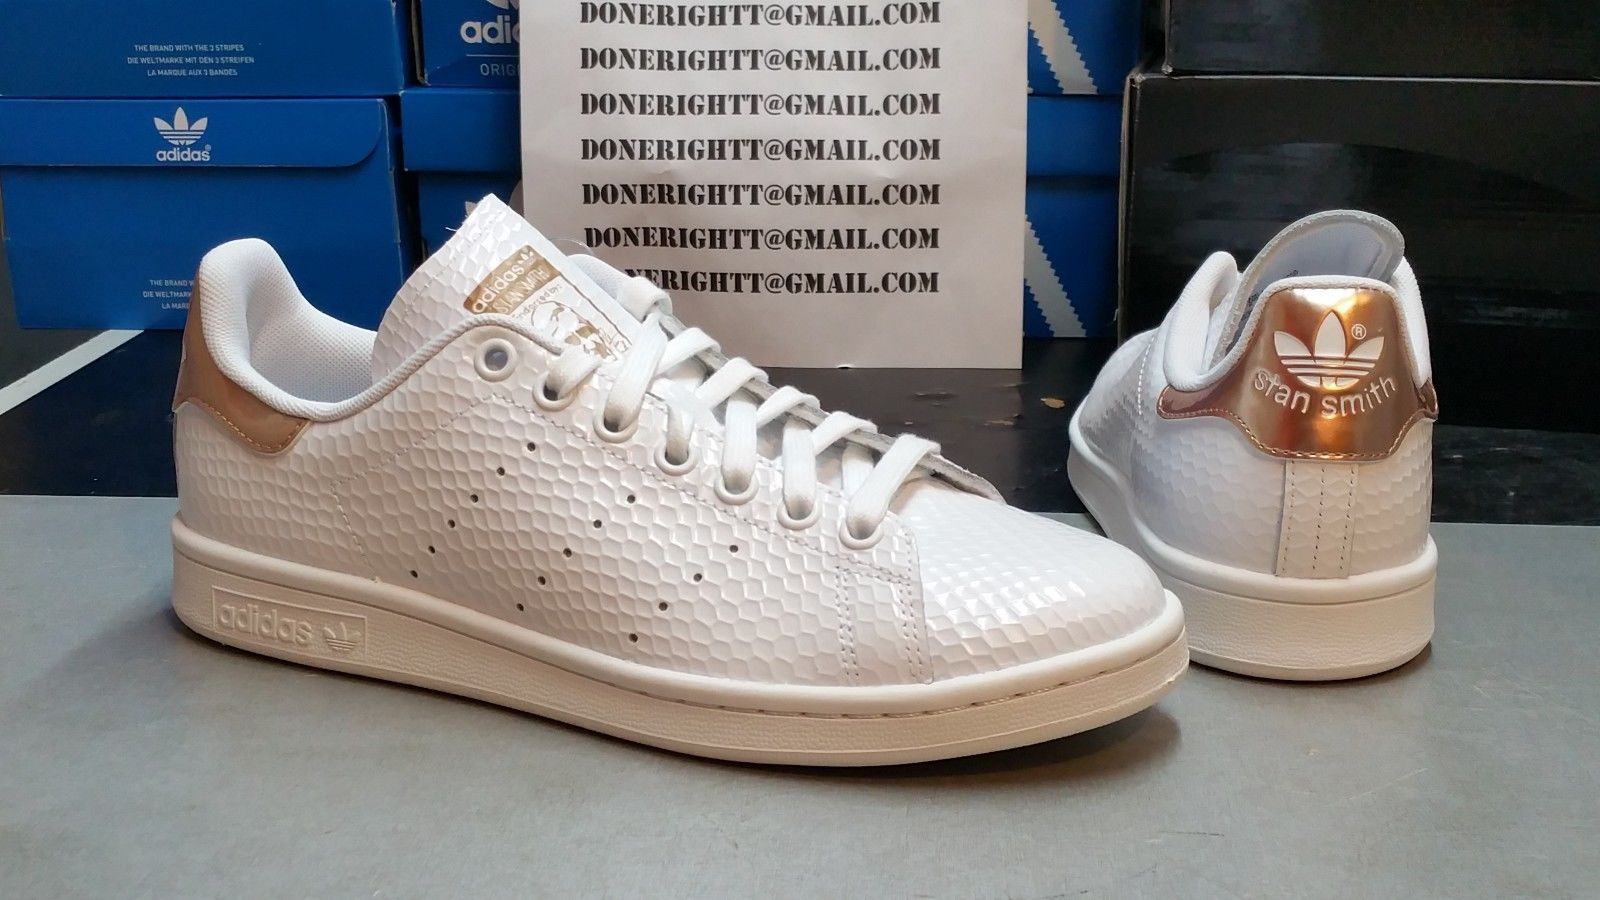 low priced 66a50 9d270 Womens Adidas Stan Smith Copper White Kettle Snakeskin Metallic Rose Gold  Yeezy   eBay, 39